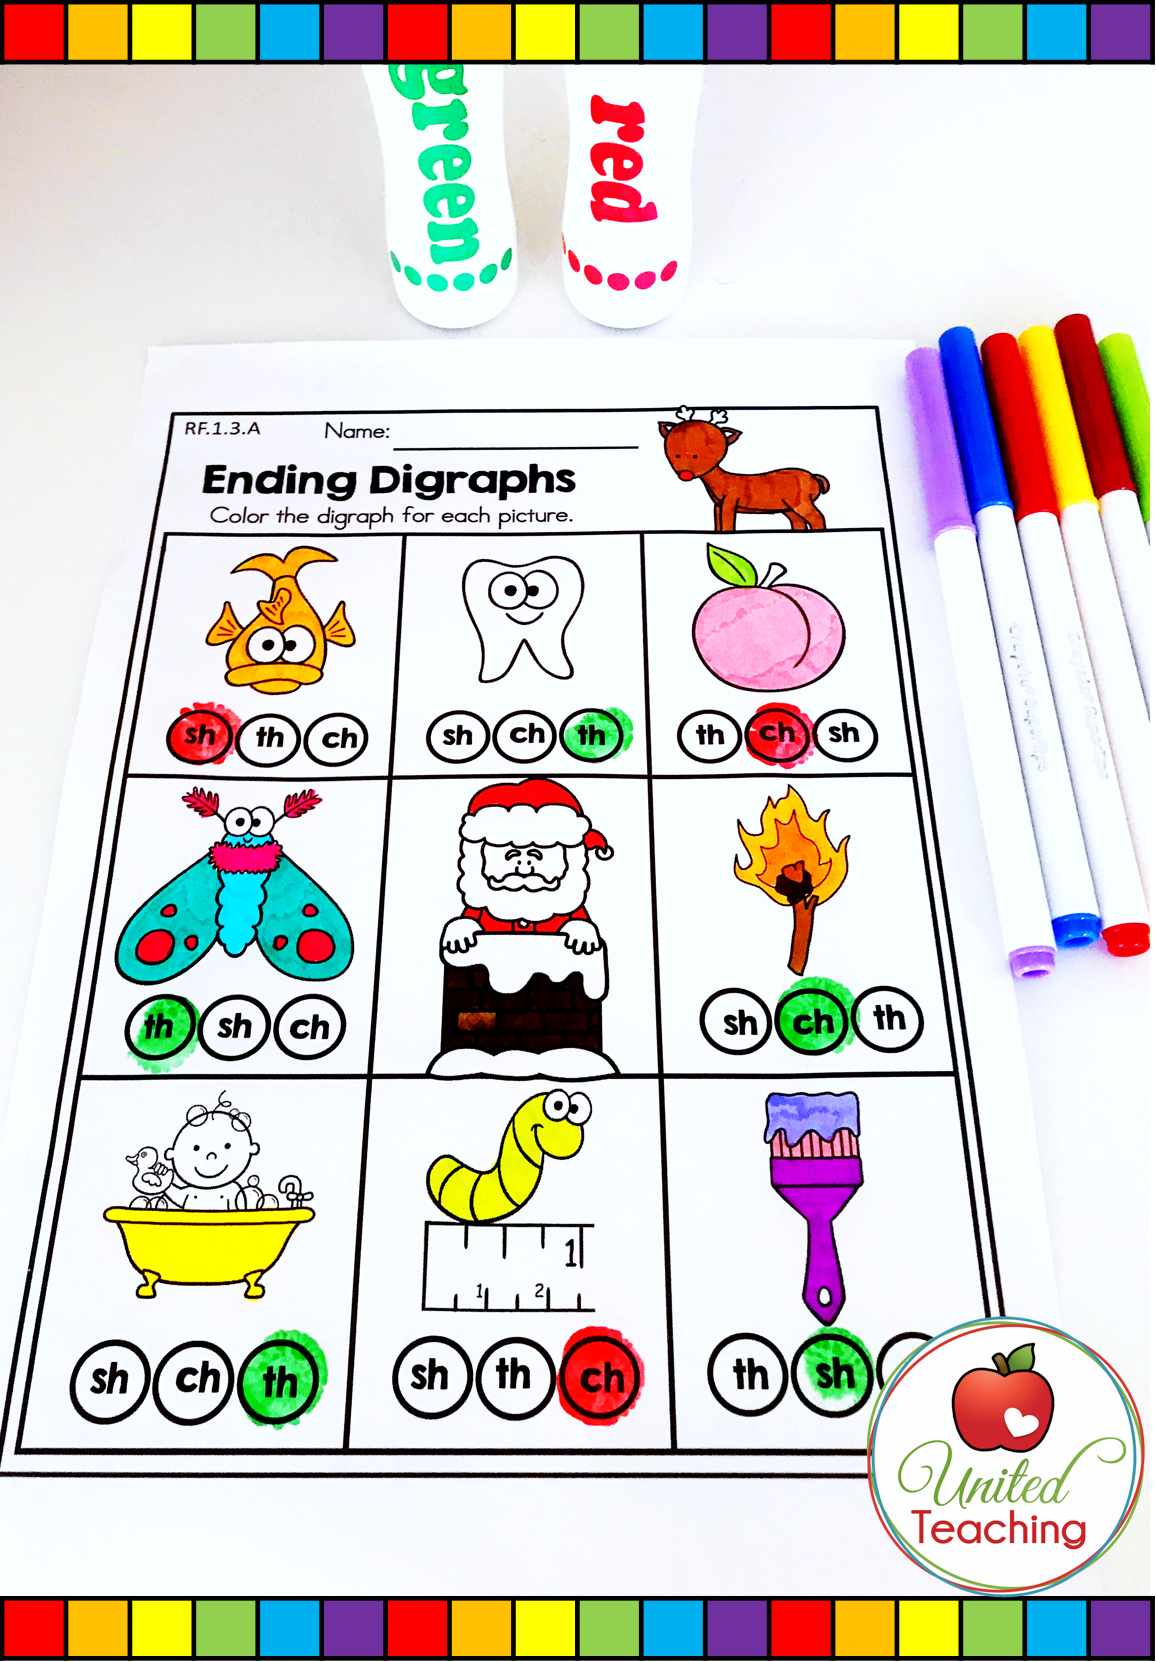 Identify The Ending Digraph For Each Picture And Color Or